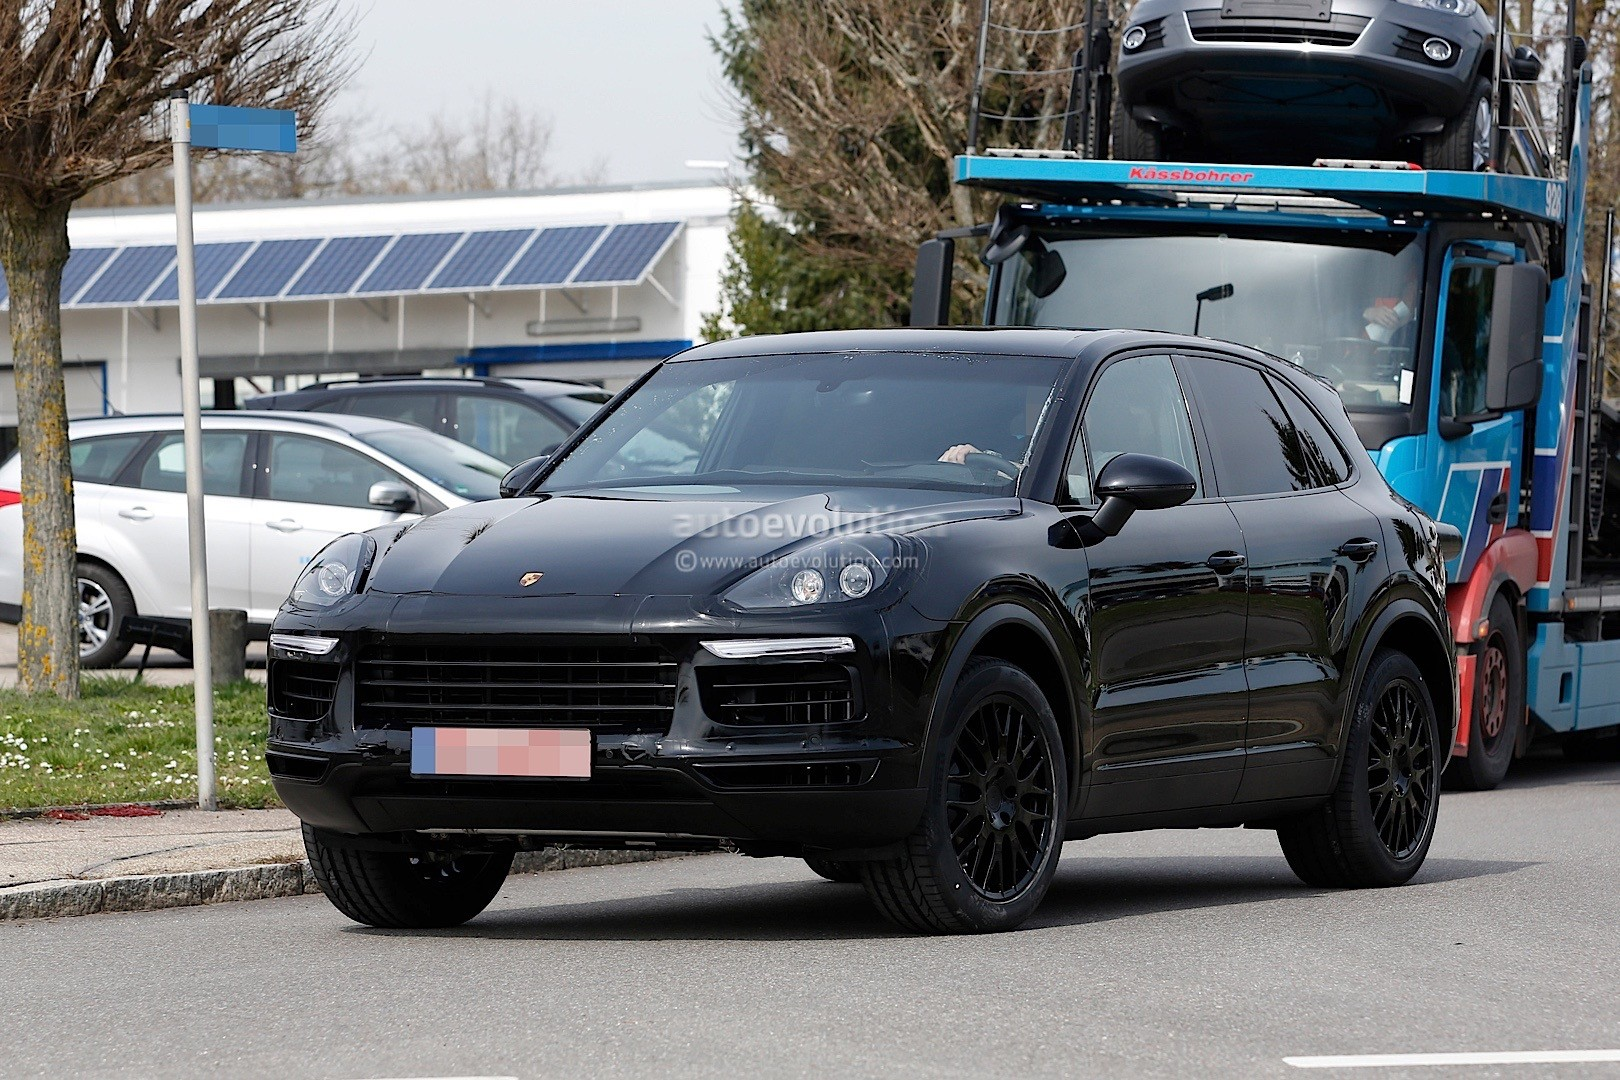 2018 Porsche Cayenne Test Mule Spied In Germany Autoevolution